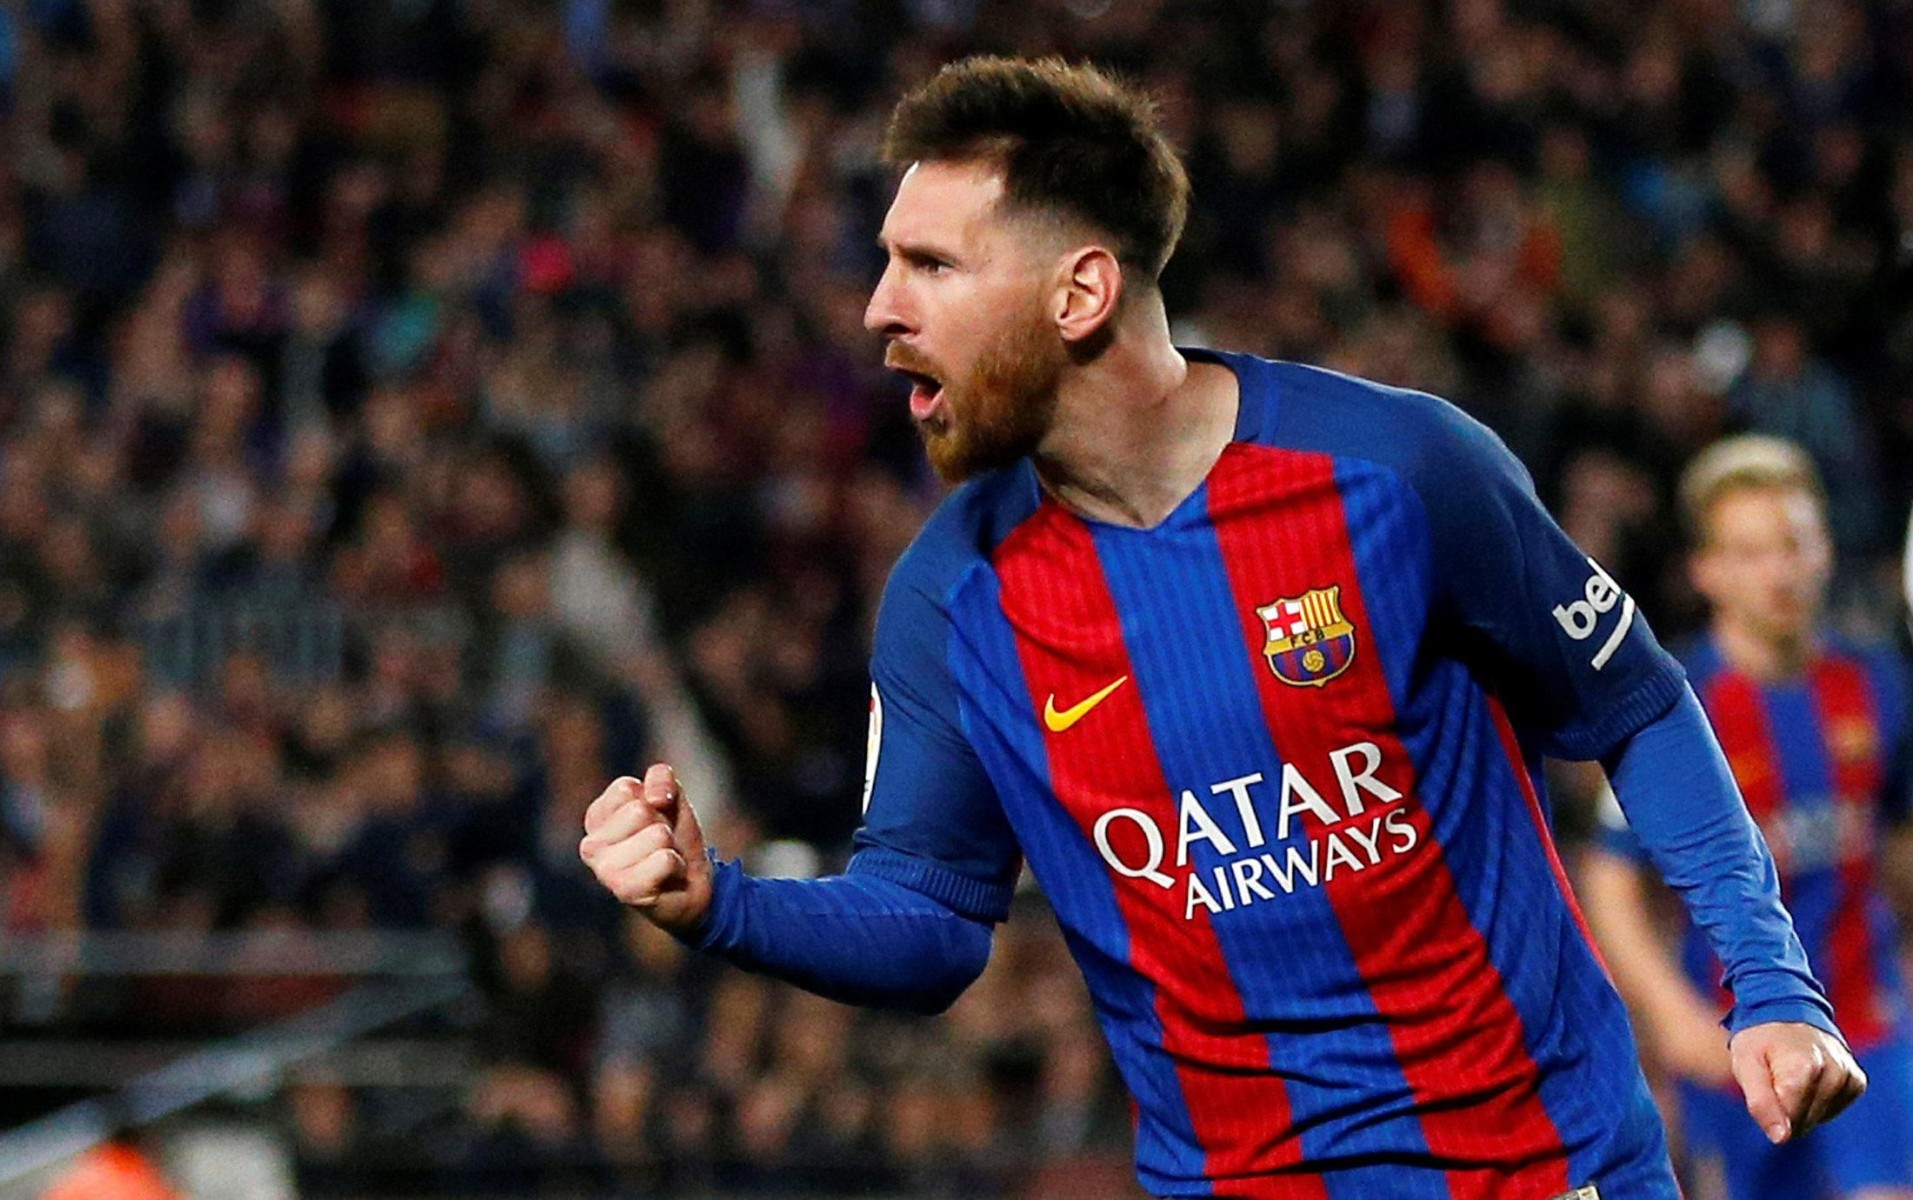 Barcelona star Lionel Messi lines up as a No.10